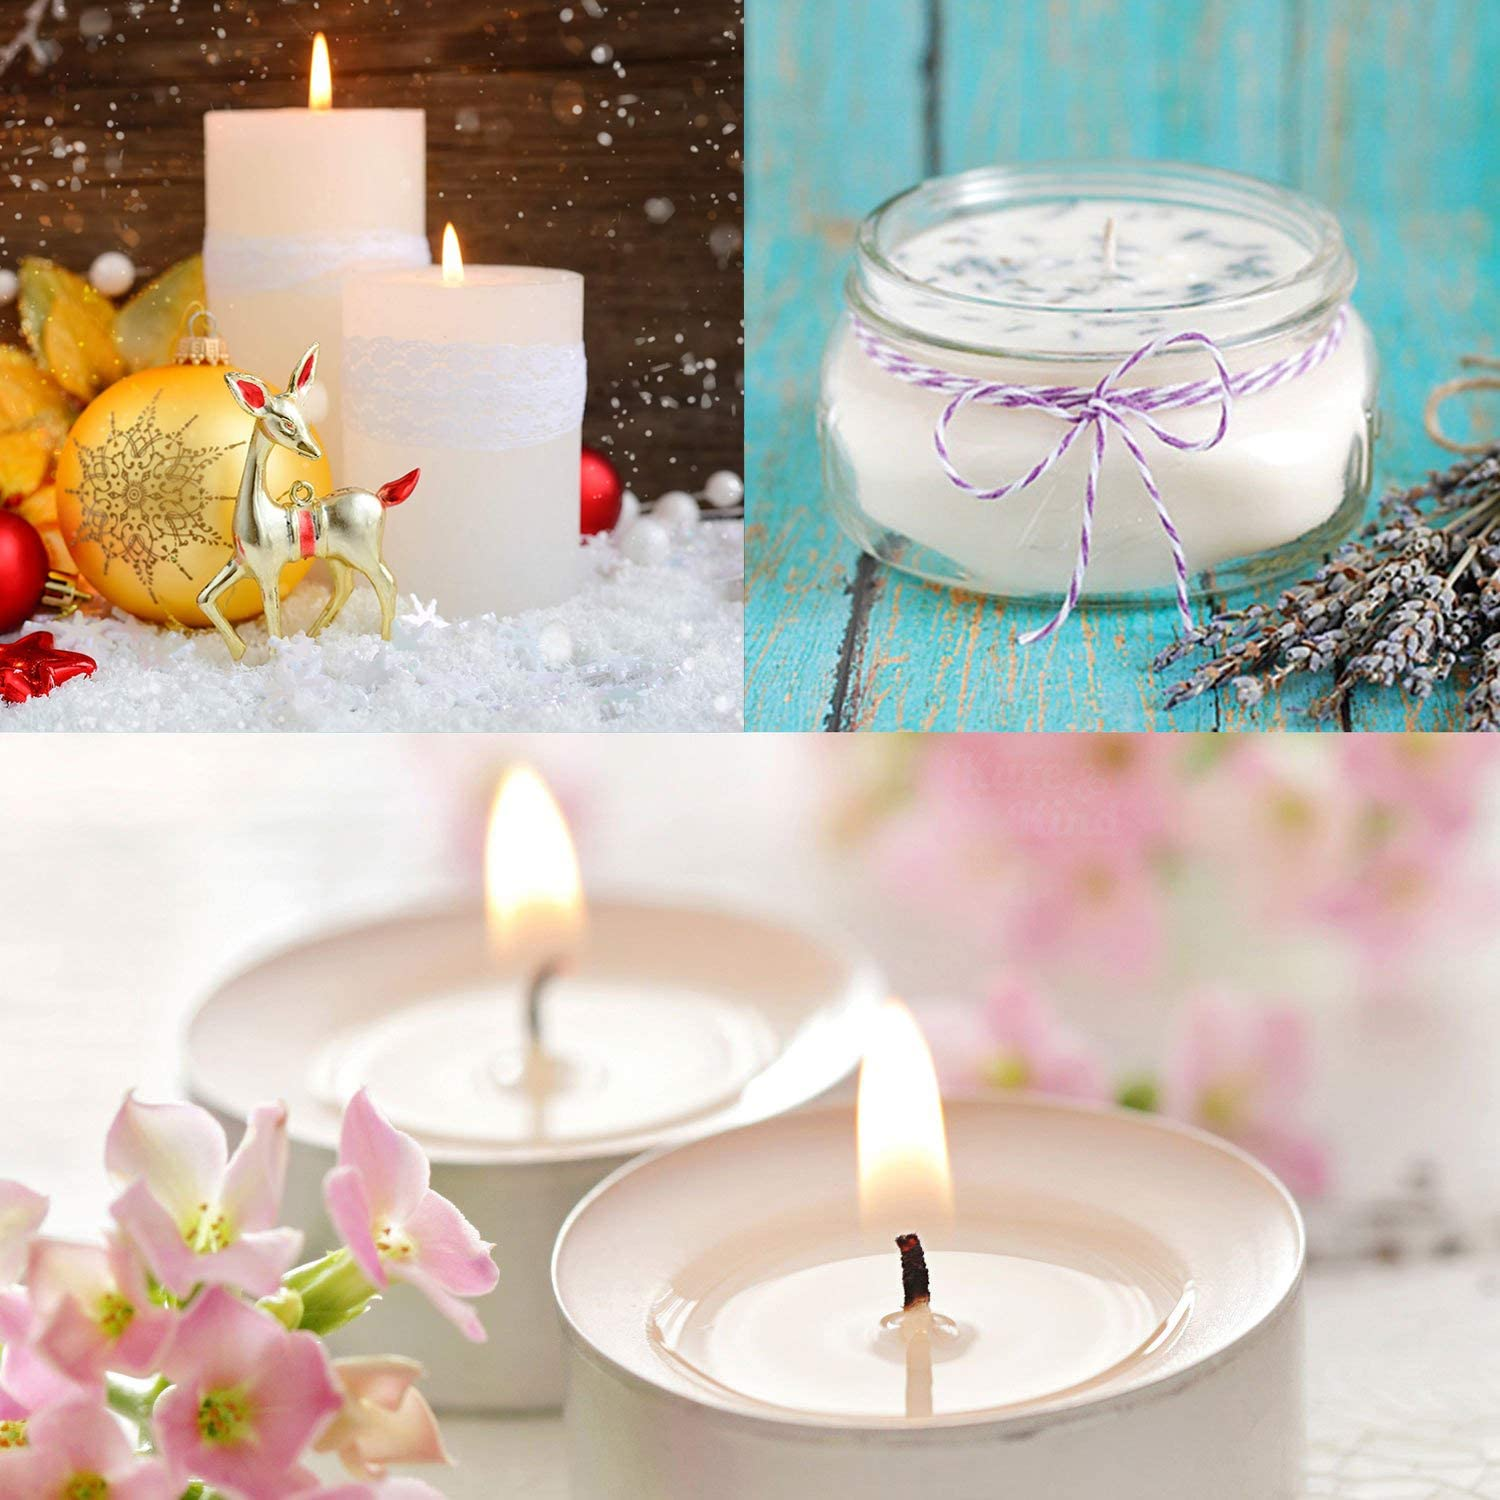 3,2.3,1.8 Candle DIY Velidy 301 Pieces Candle Making Kit Including150pcs Natural Candle Wicks/&150pcs Candle Wicks Stickers /& 1pcs Candle Wick Centering Device for Candle Making